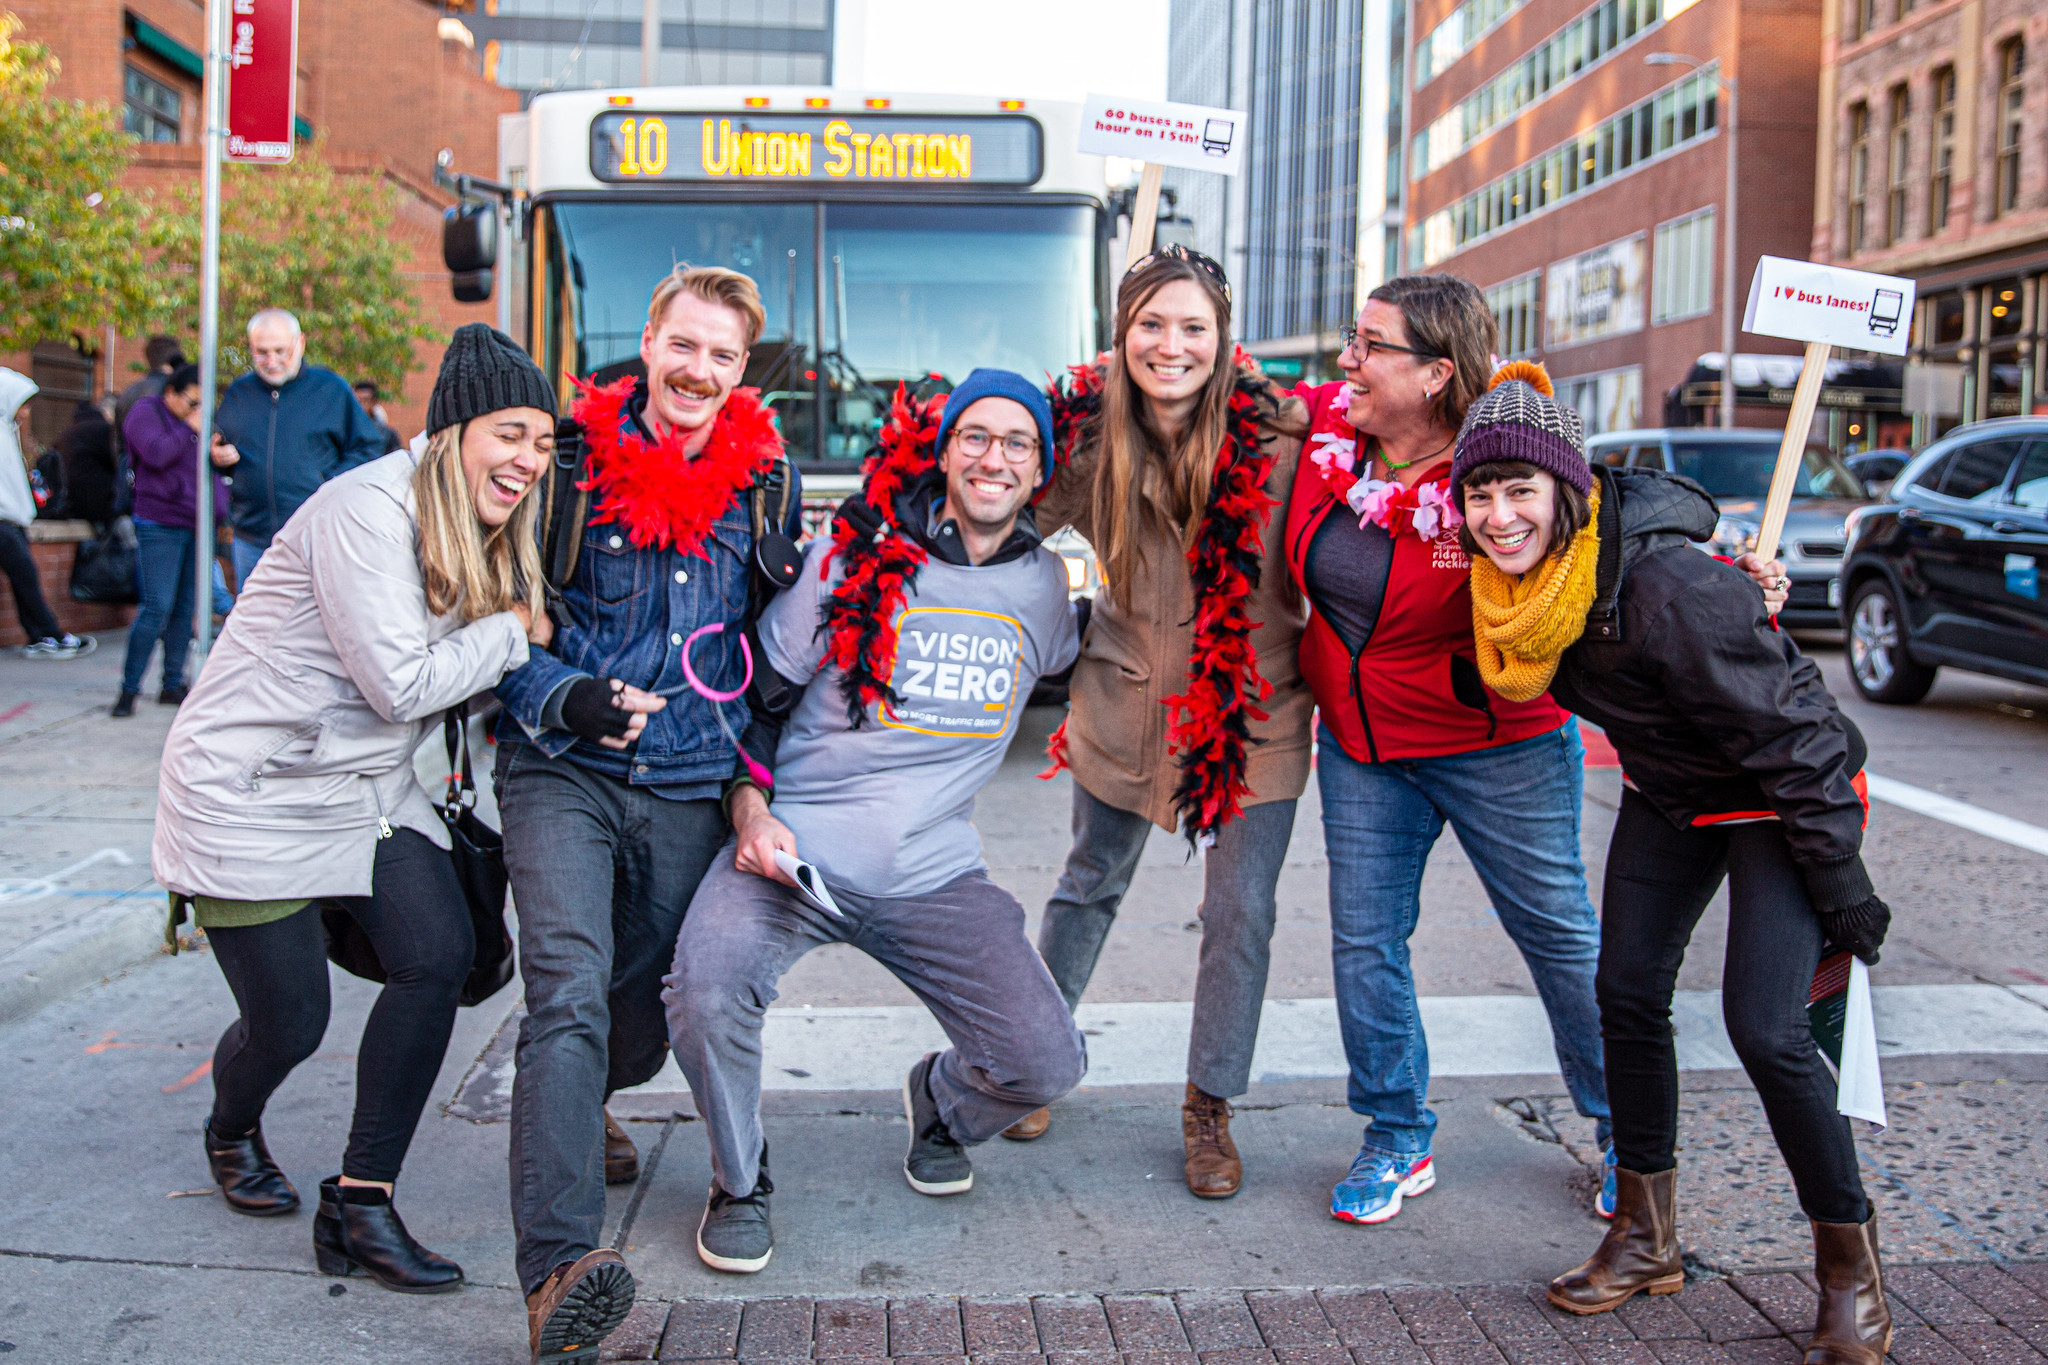 Six smiling people and an RTD bus